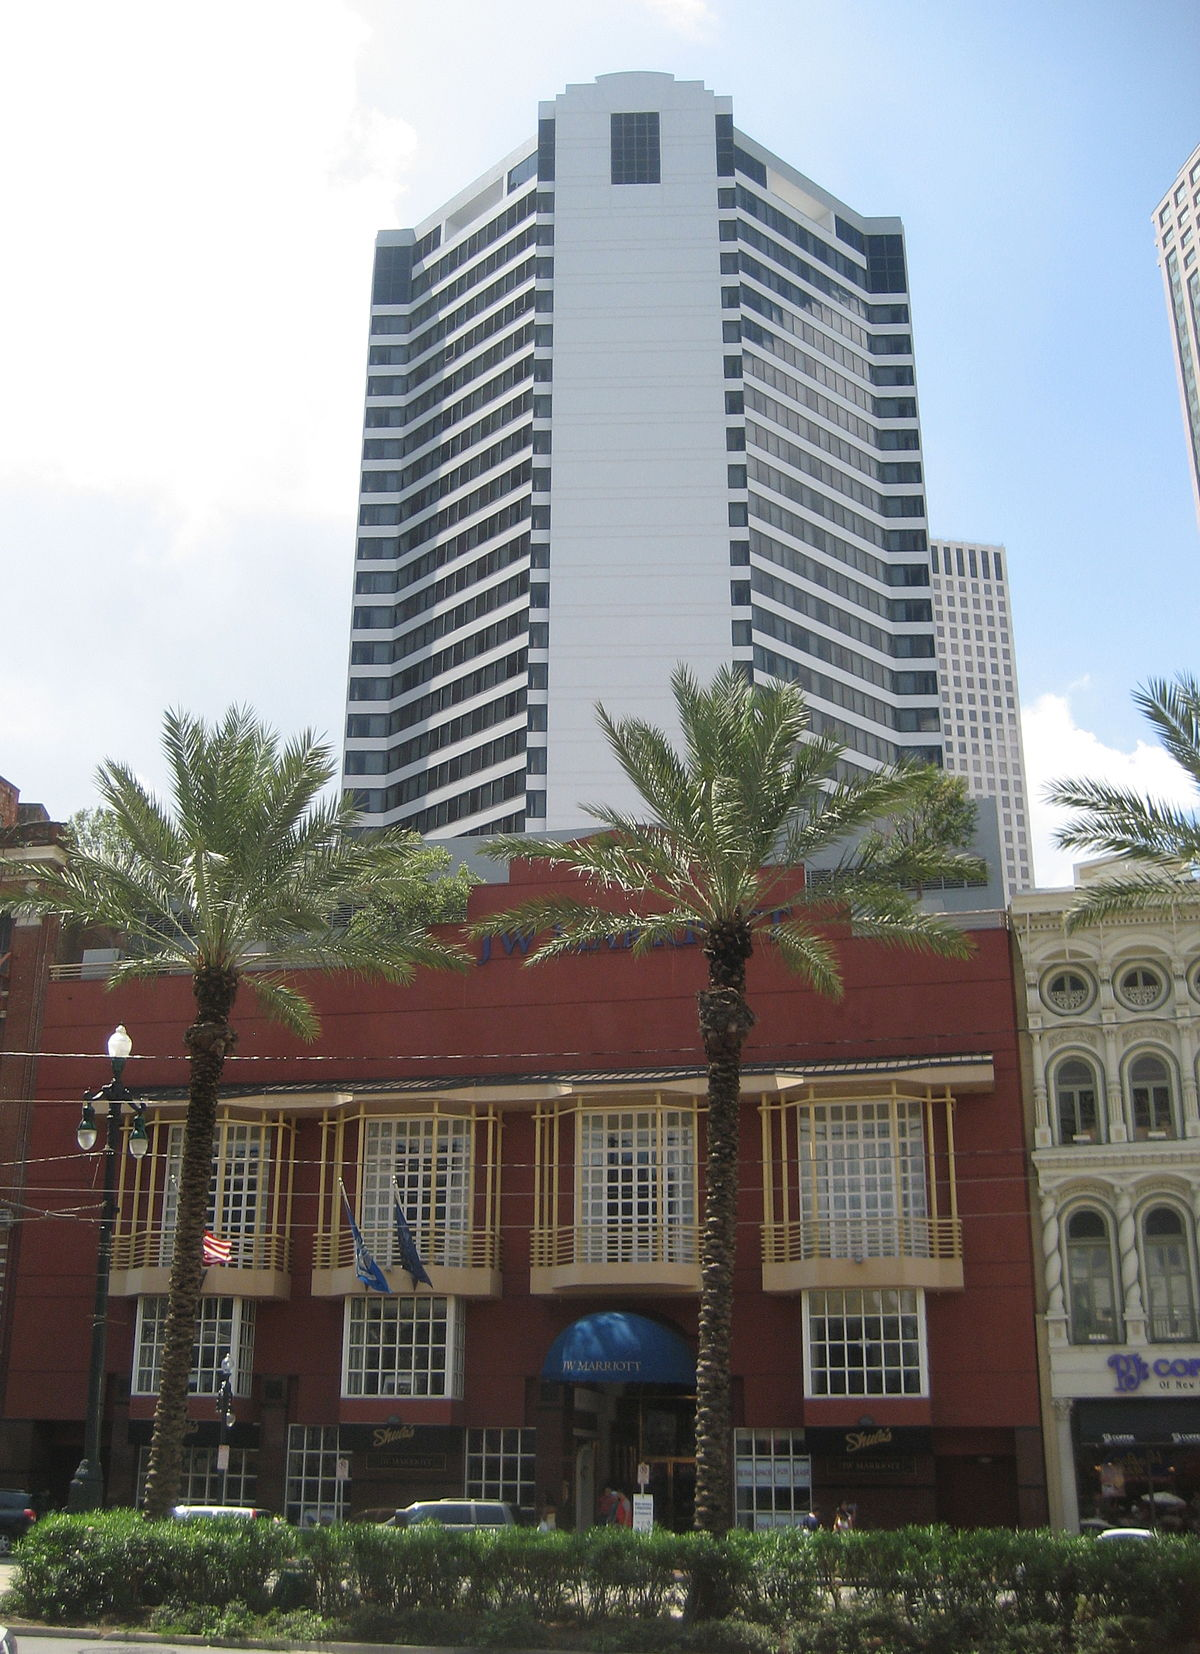 New Orleans Hotels >> JW Marriott Hotel New Orleans - Wikipedia